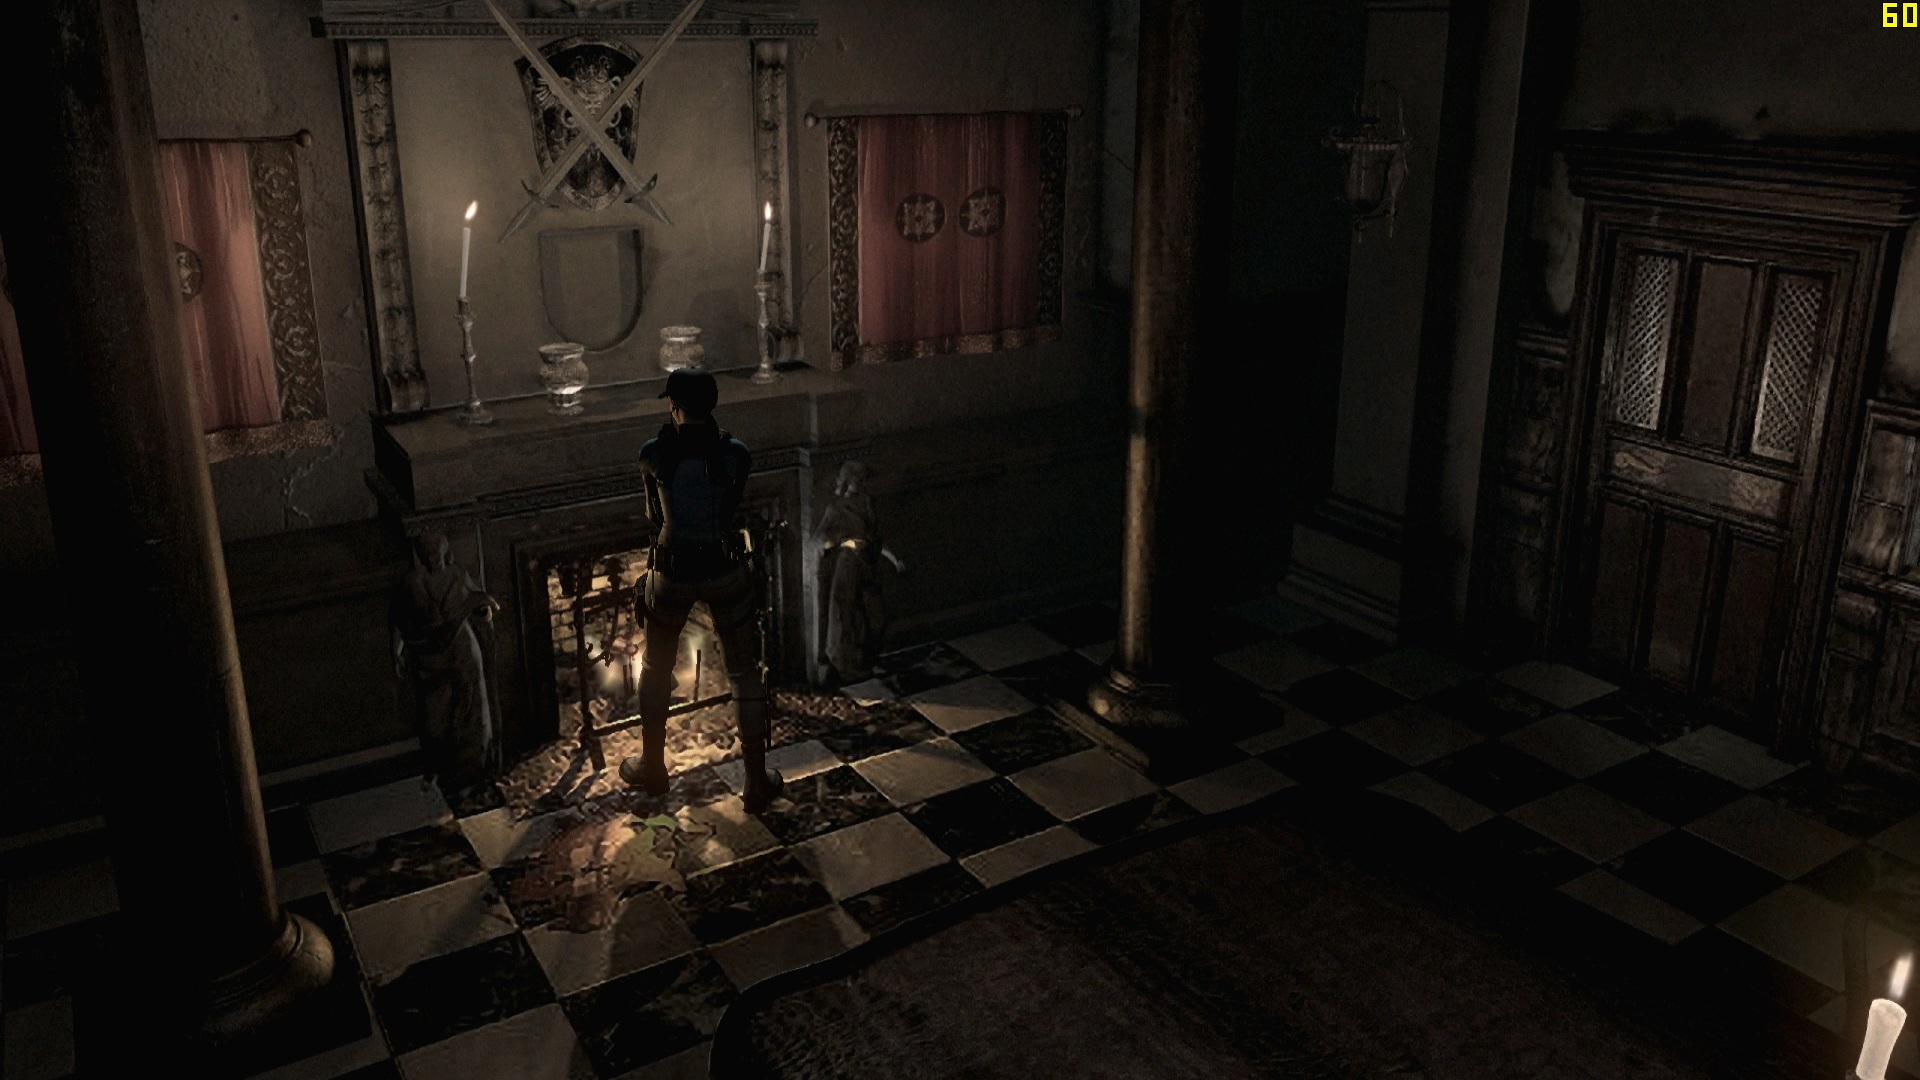 Resident Evil HD Remaster - Low Vs High Comparison Screenshots - DSOGaming